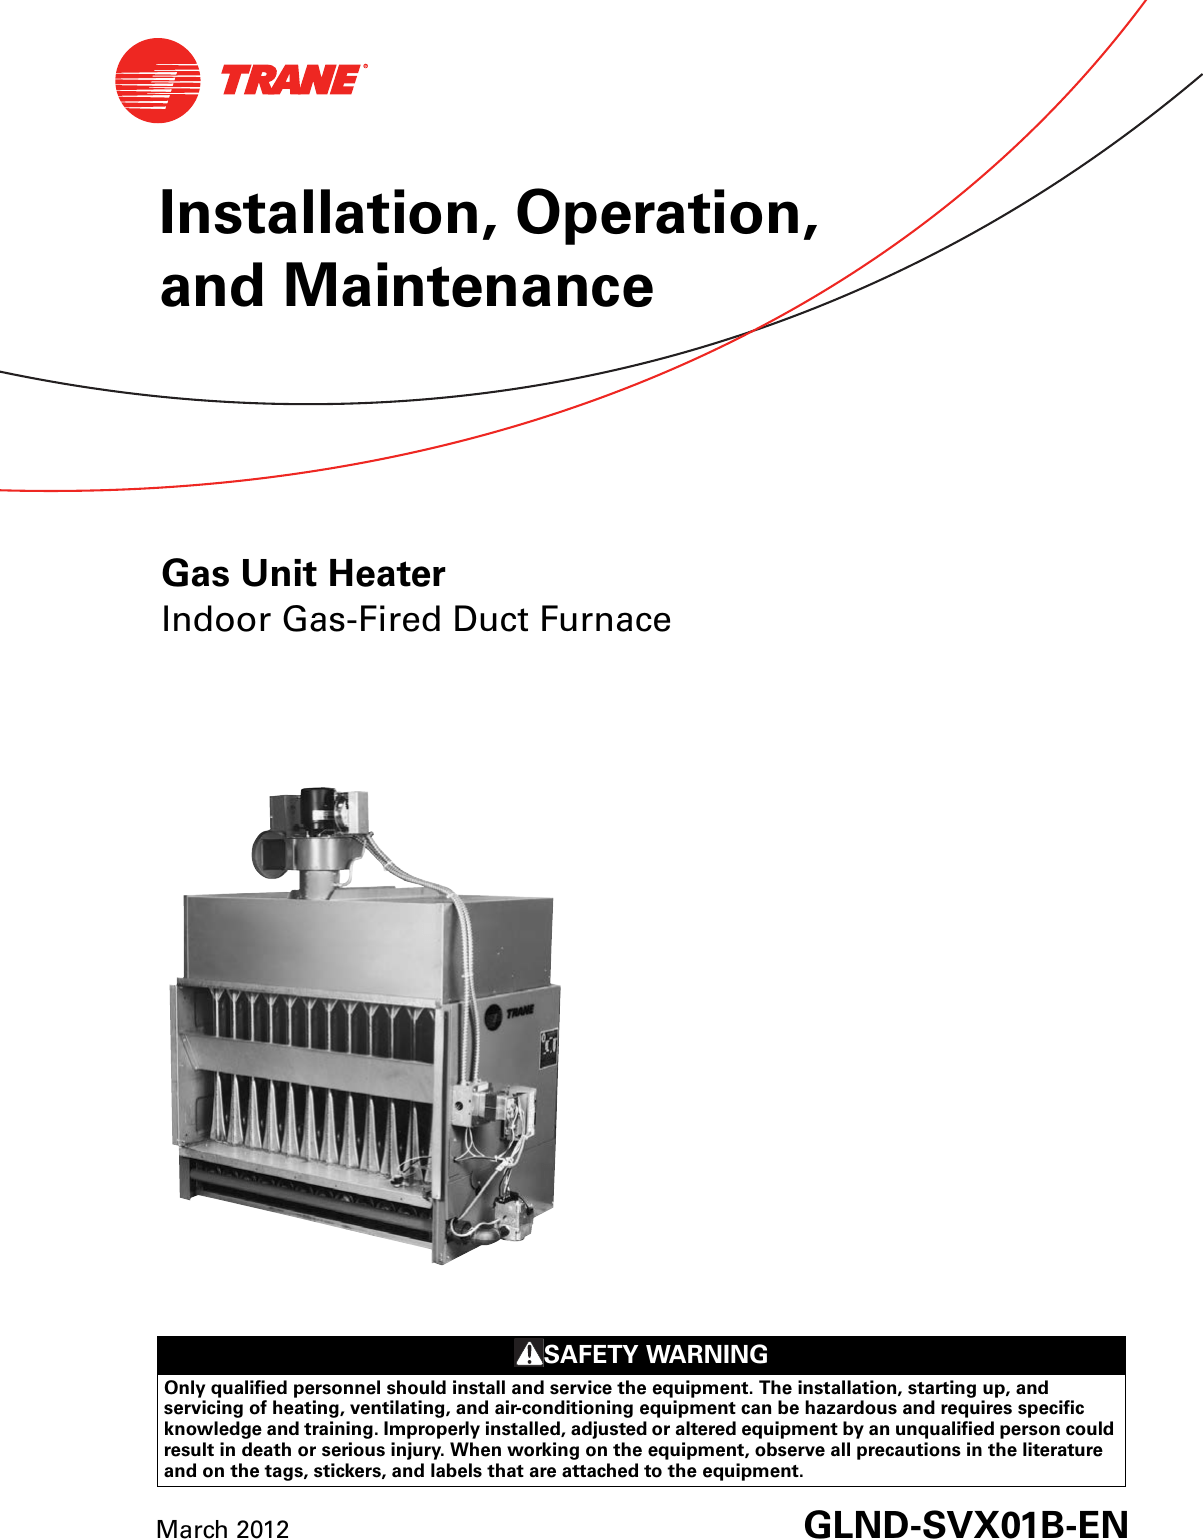 hight resolution of trane gas unit heaters installation and maintenance manual glnd svx01b en 03 16 2012 installation operation heater indoor fired duct furnace s gl